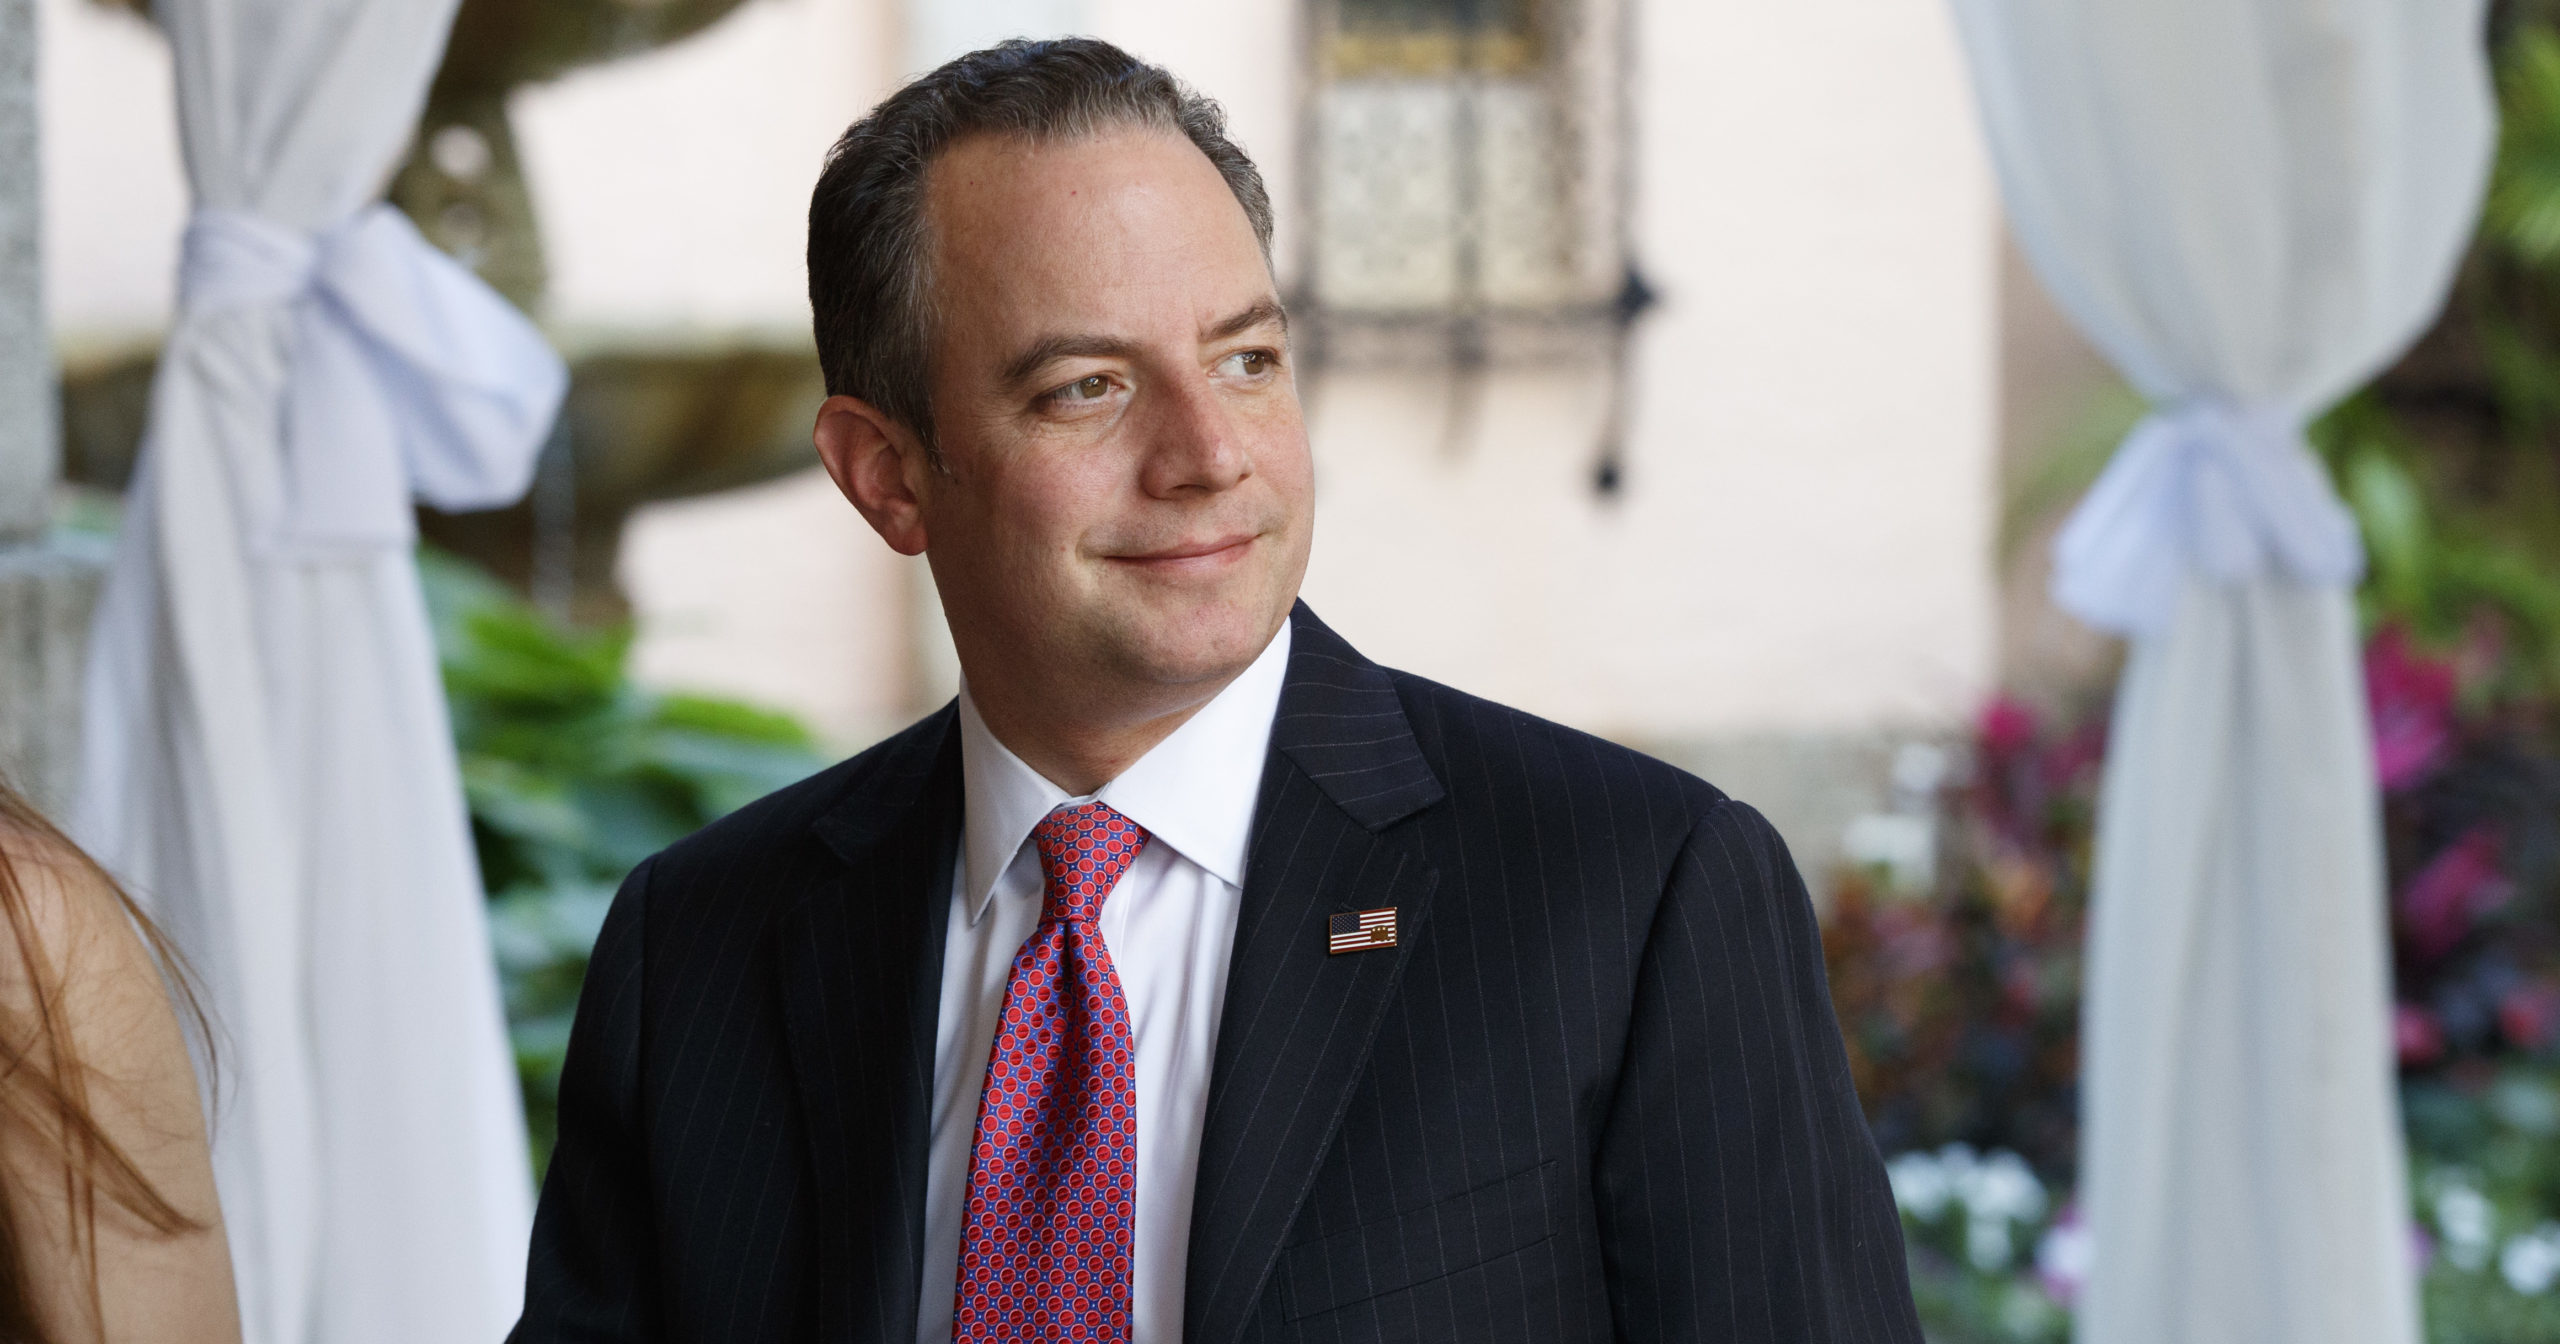 Reince Priebus, then chief of staff for President-elect Donald Trump, arrives at Mar-a-Lago in Palm Beach, Florida, on Dec. 28, 2016.